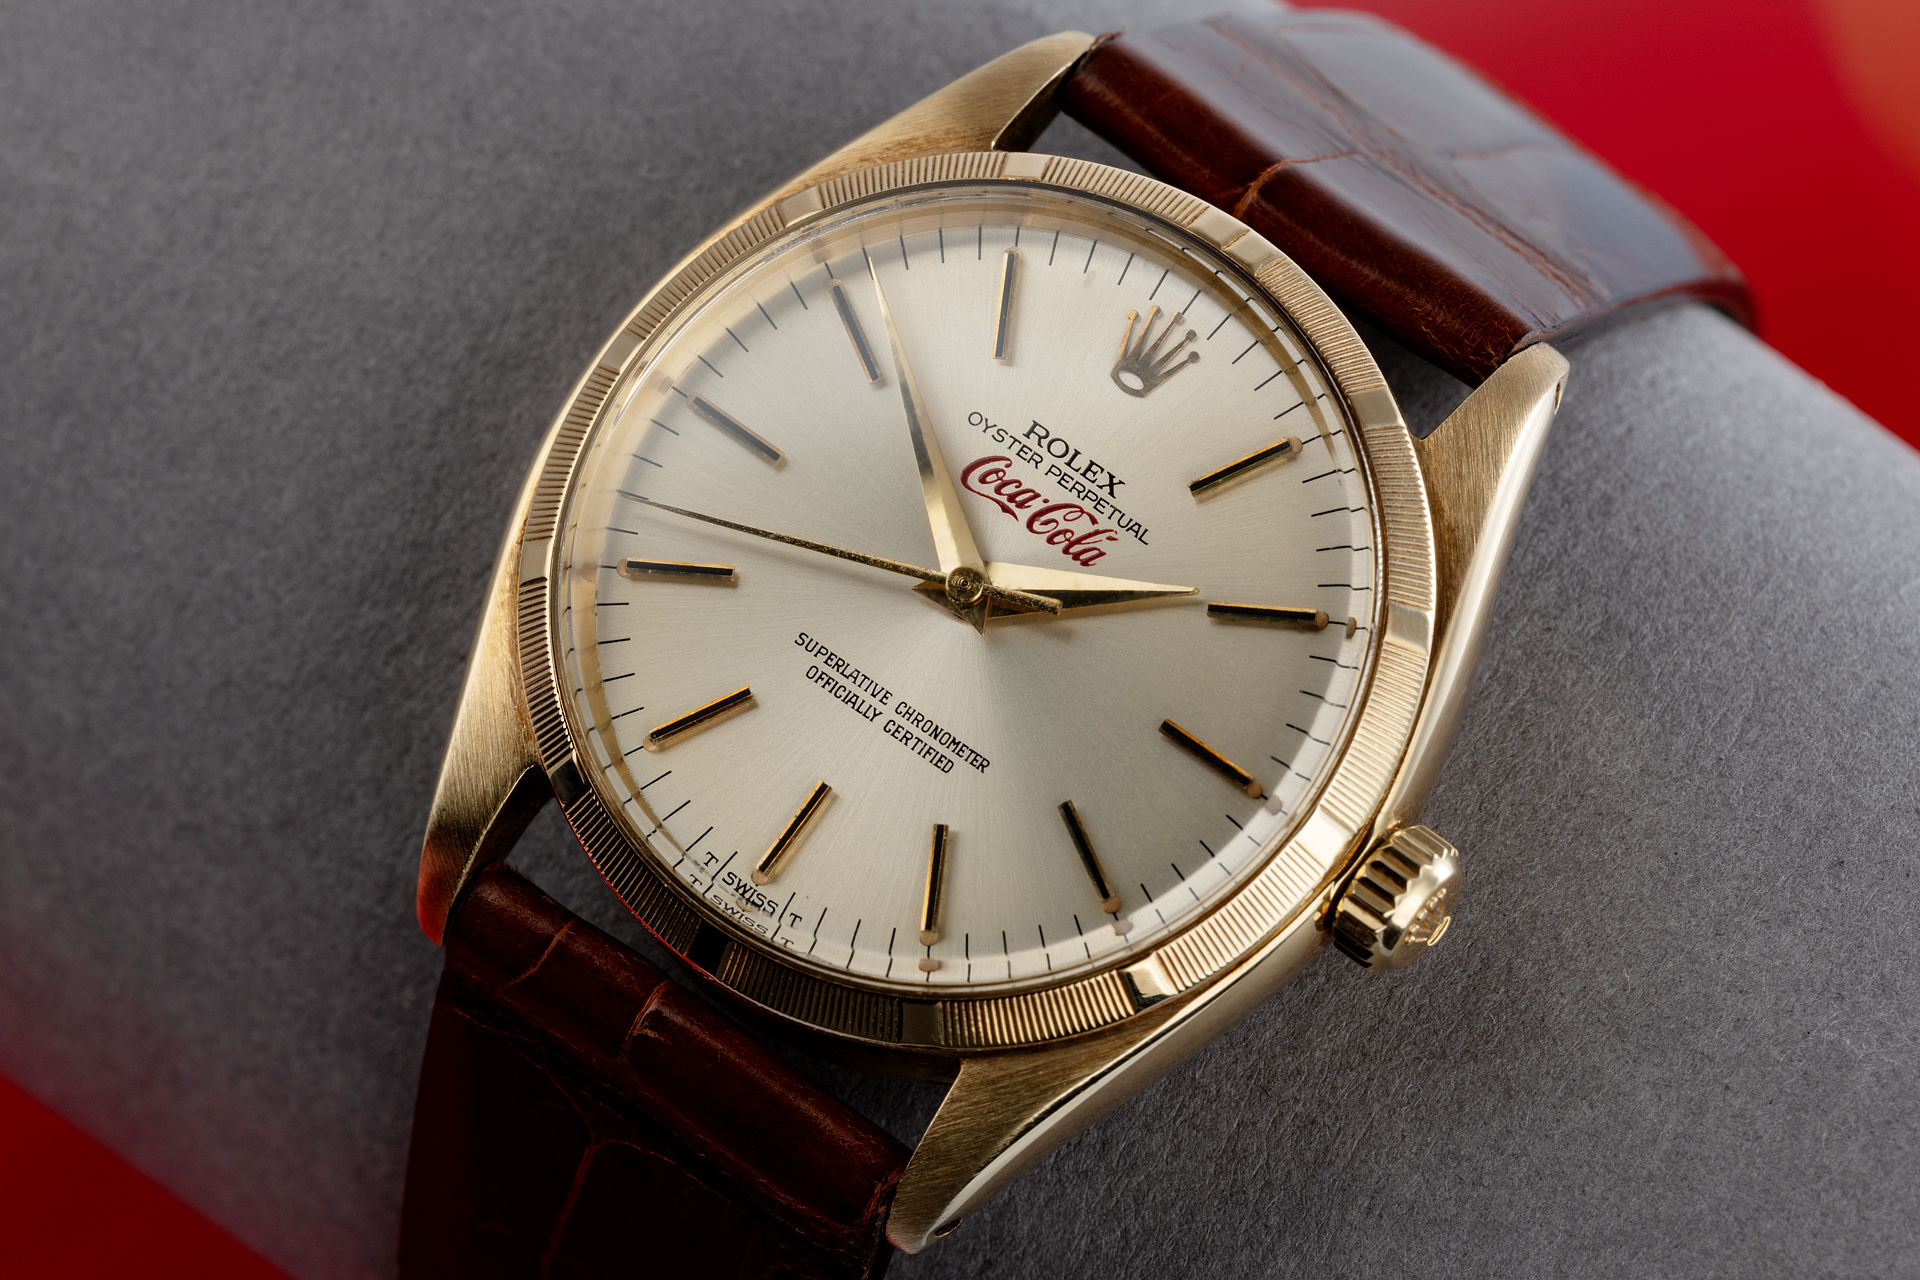 b557360d68f Rolex Oyster Perpetual Watches | ref 1003 | Extremely Rare Vintage ...